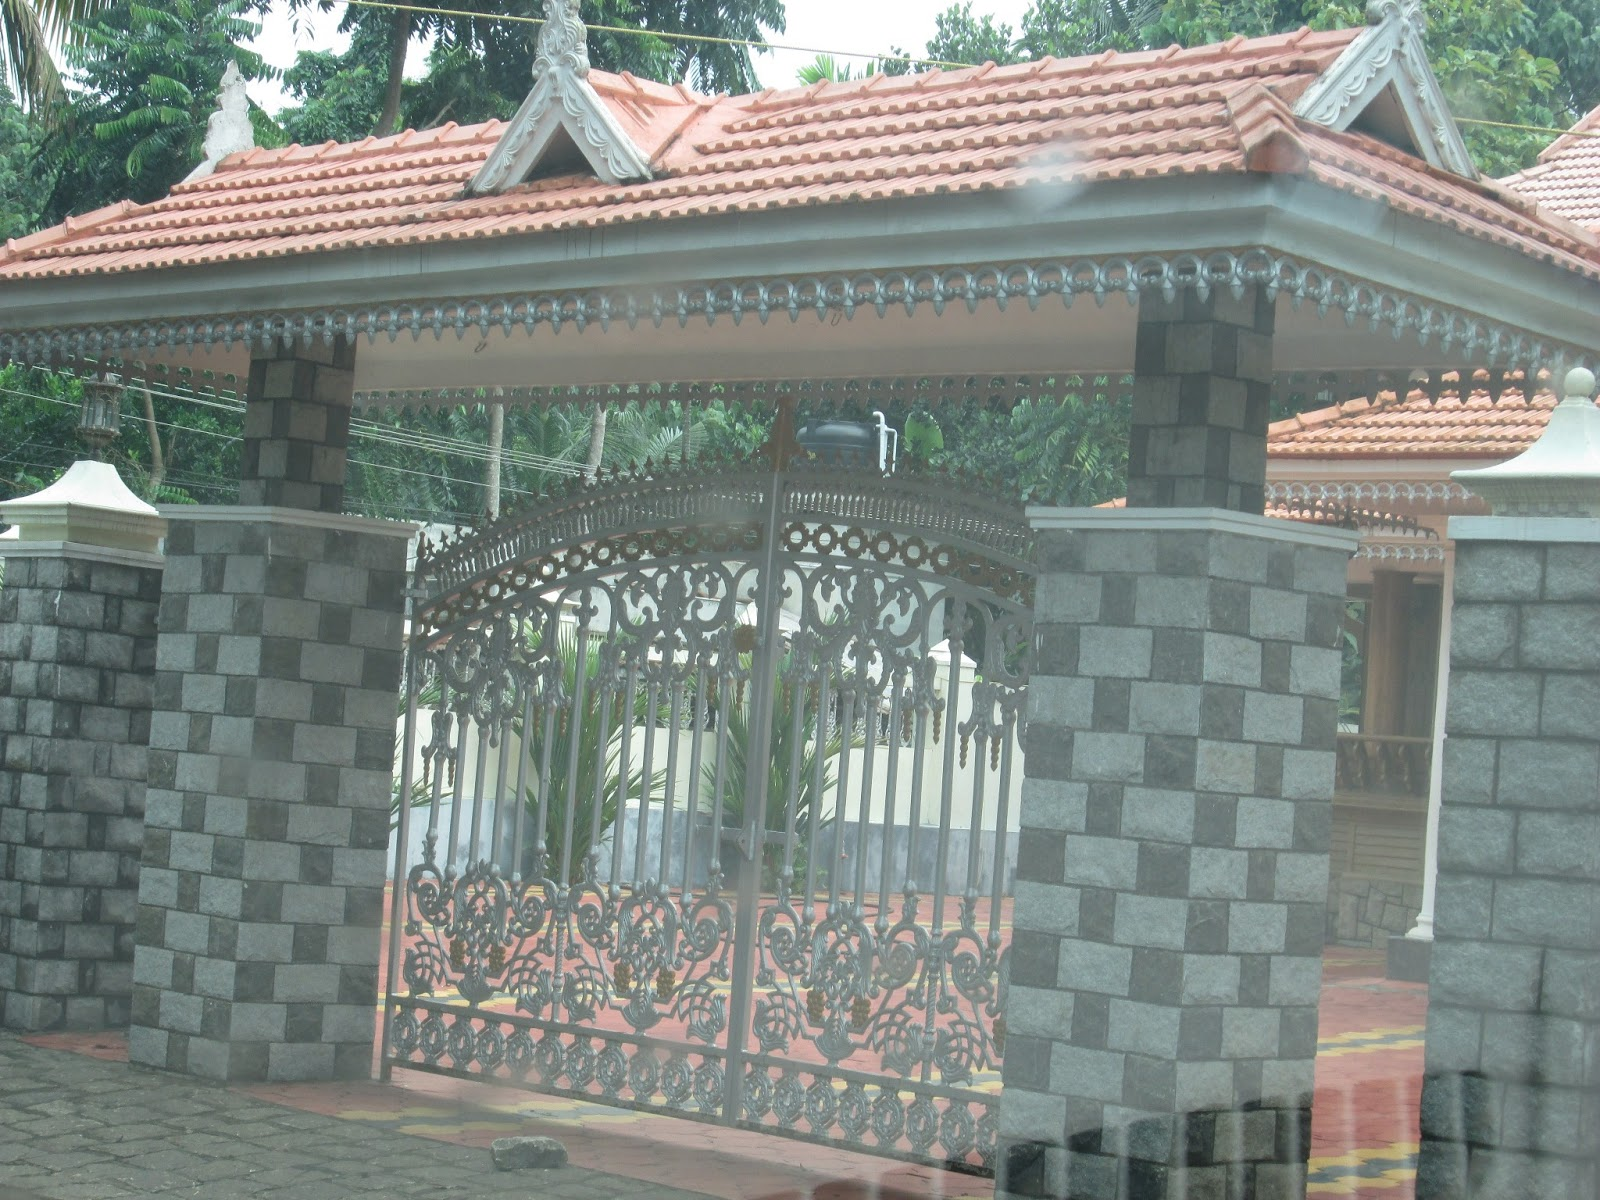 Padippura design images shape kerala home - Gate With Kerala Style Padippura Gate Designs In Kerala